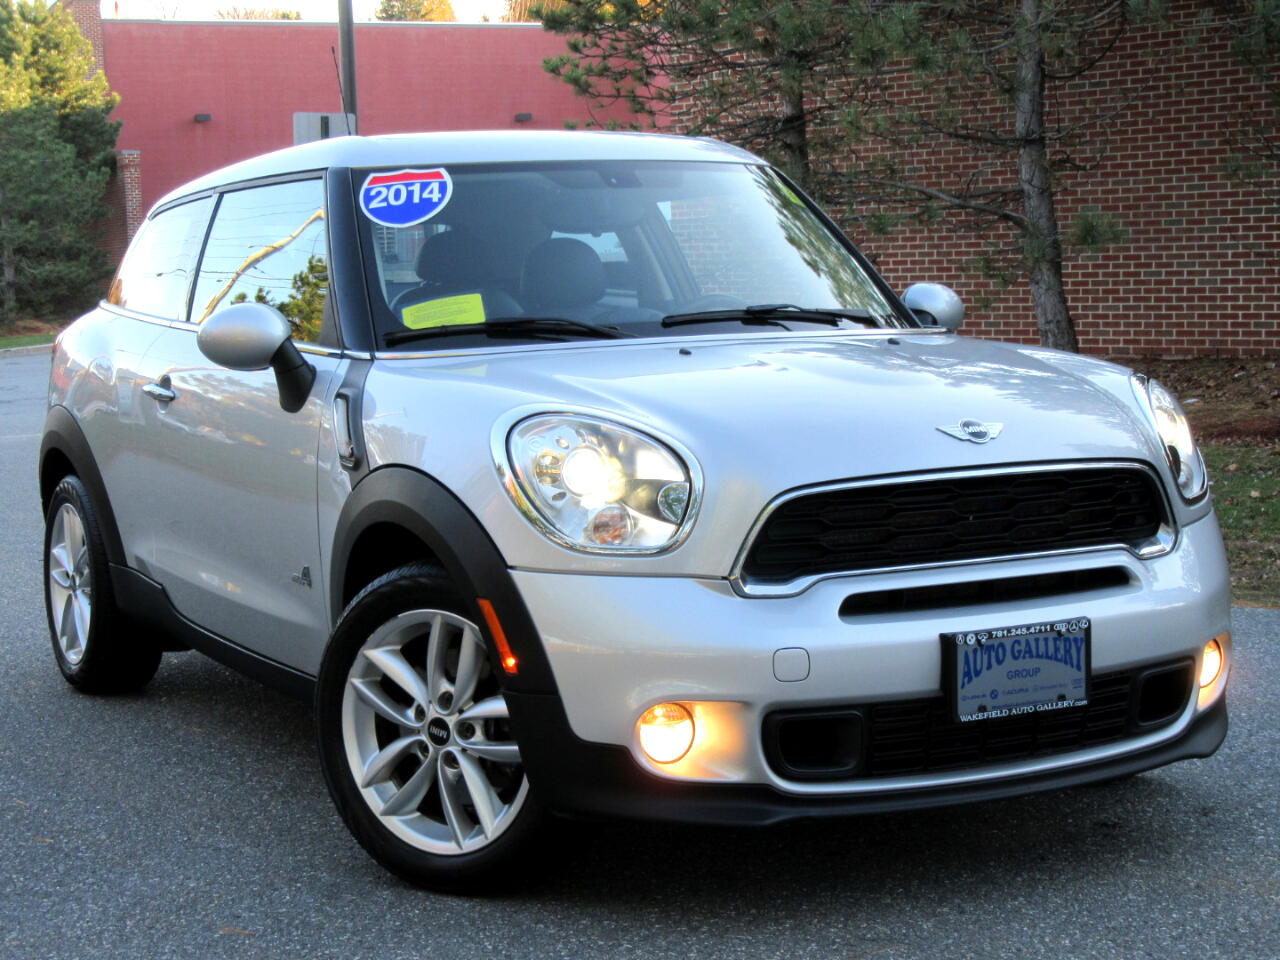 2014 MINI Cooper Paceman ALL 4 2 dr S NAVIGATION LEATHER